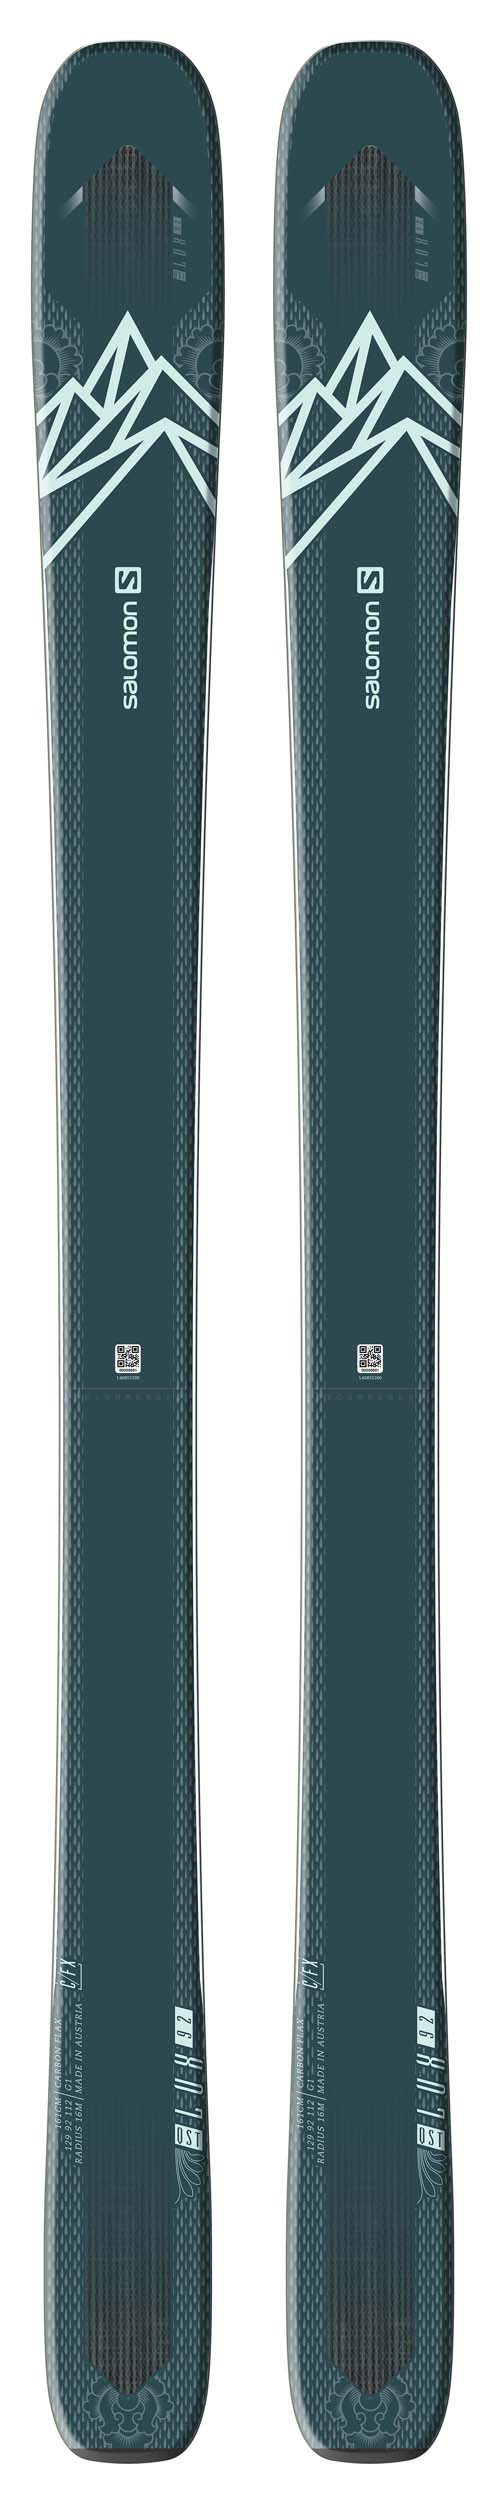 Salomon 2021 QST 92 LUX Skis (Without Bindings / Flat) NEW !! 153,161cm